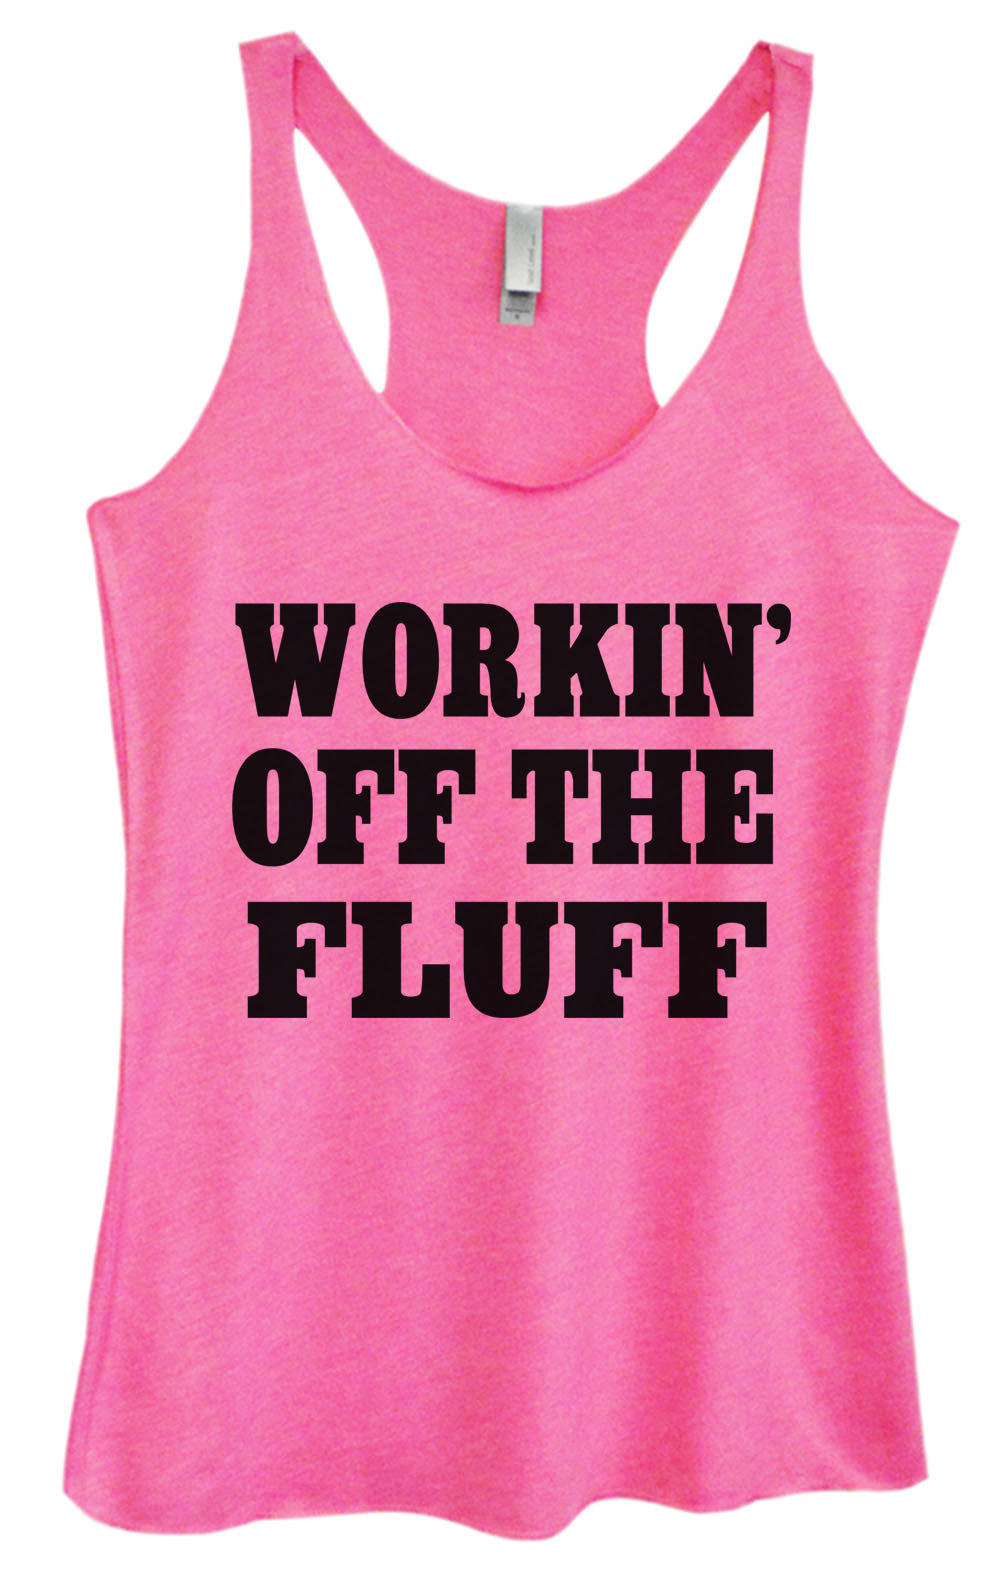 Womens Fashion Triblend Tank Top - Workin' Off The Fluff - Tri-688 - Funny Shirts Tank Tops Burnouts and Triblends  - 3